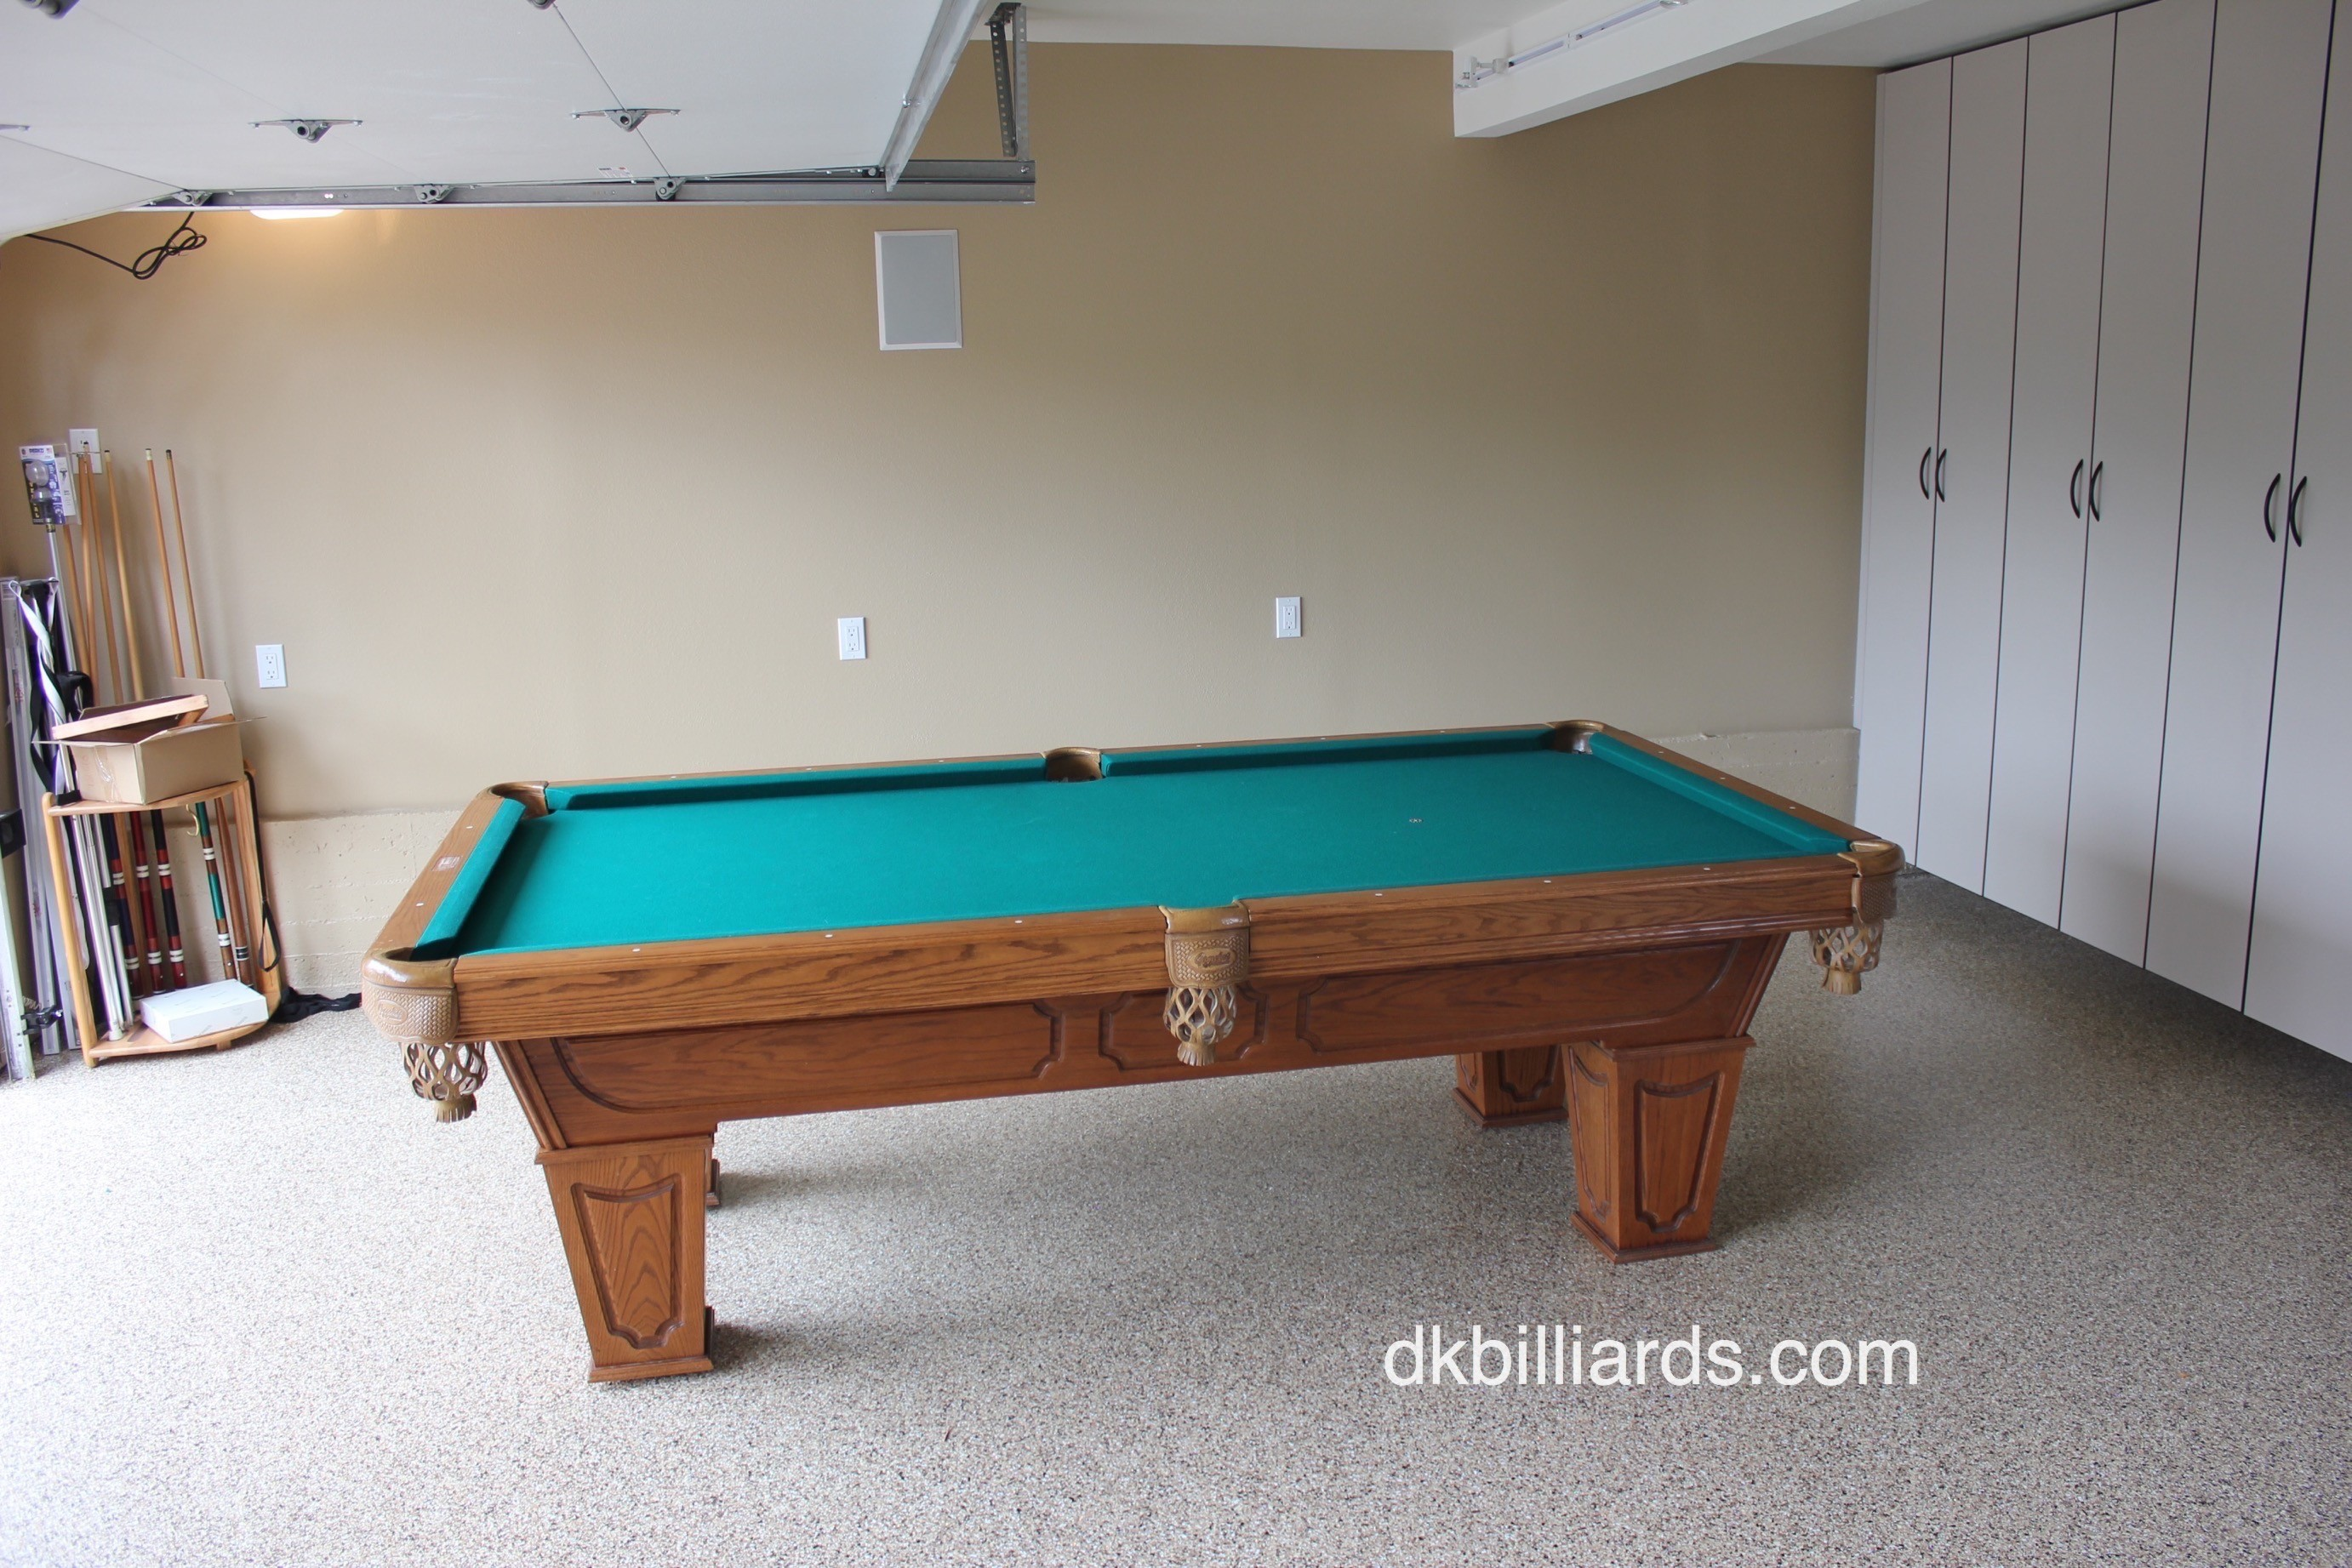 Camelot Billiards In Garage Pool Table Service Billiard Supply - Pool table in garage